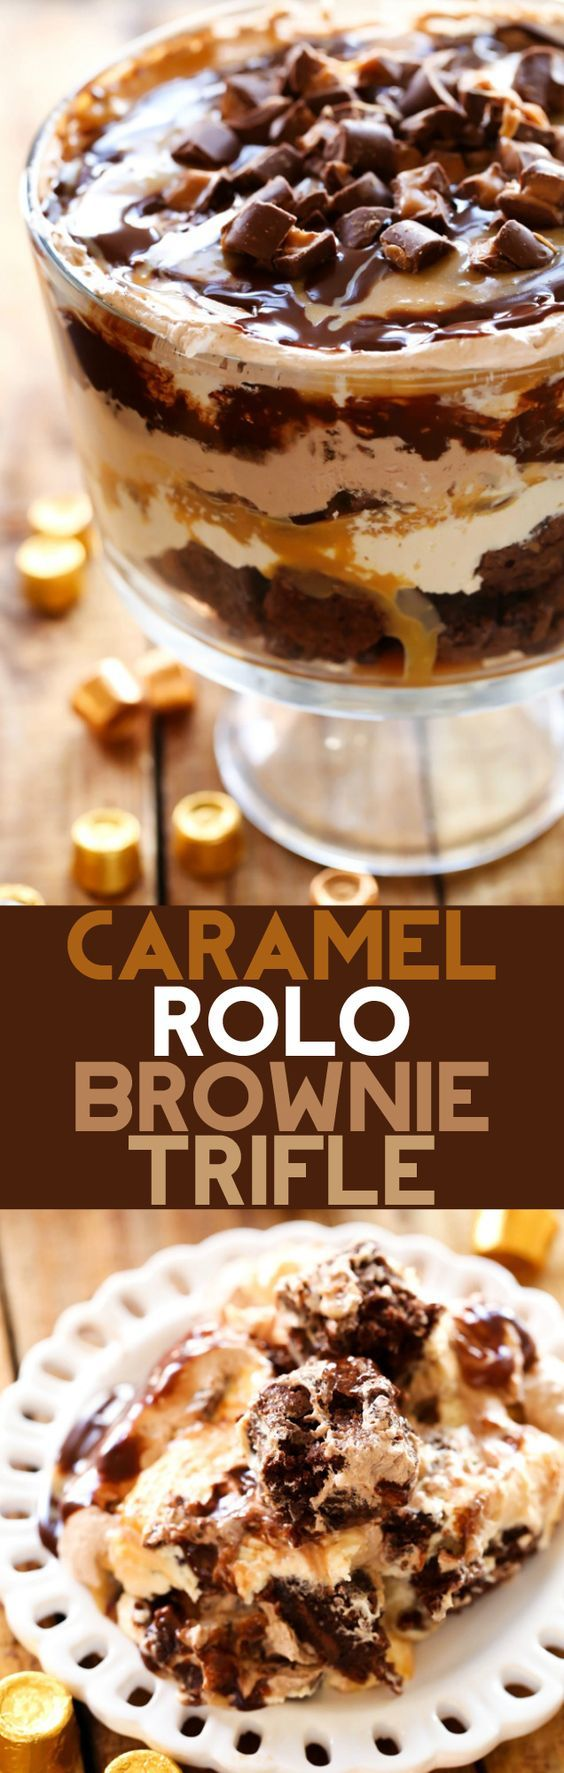 Caramel ROLO Brownie Trifle